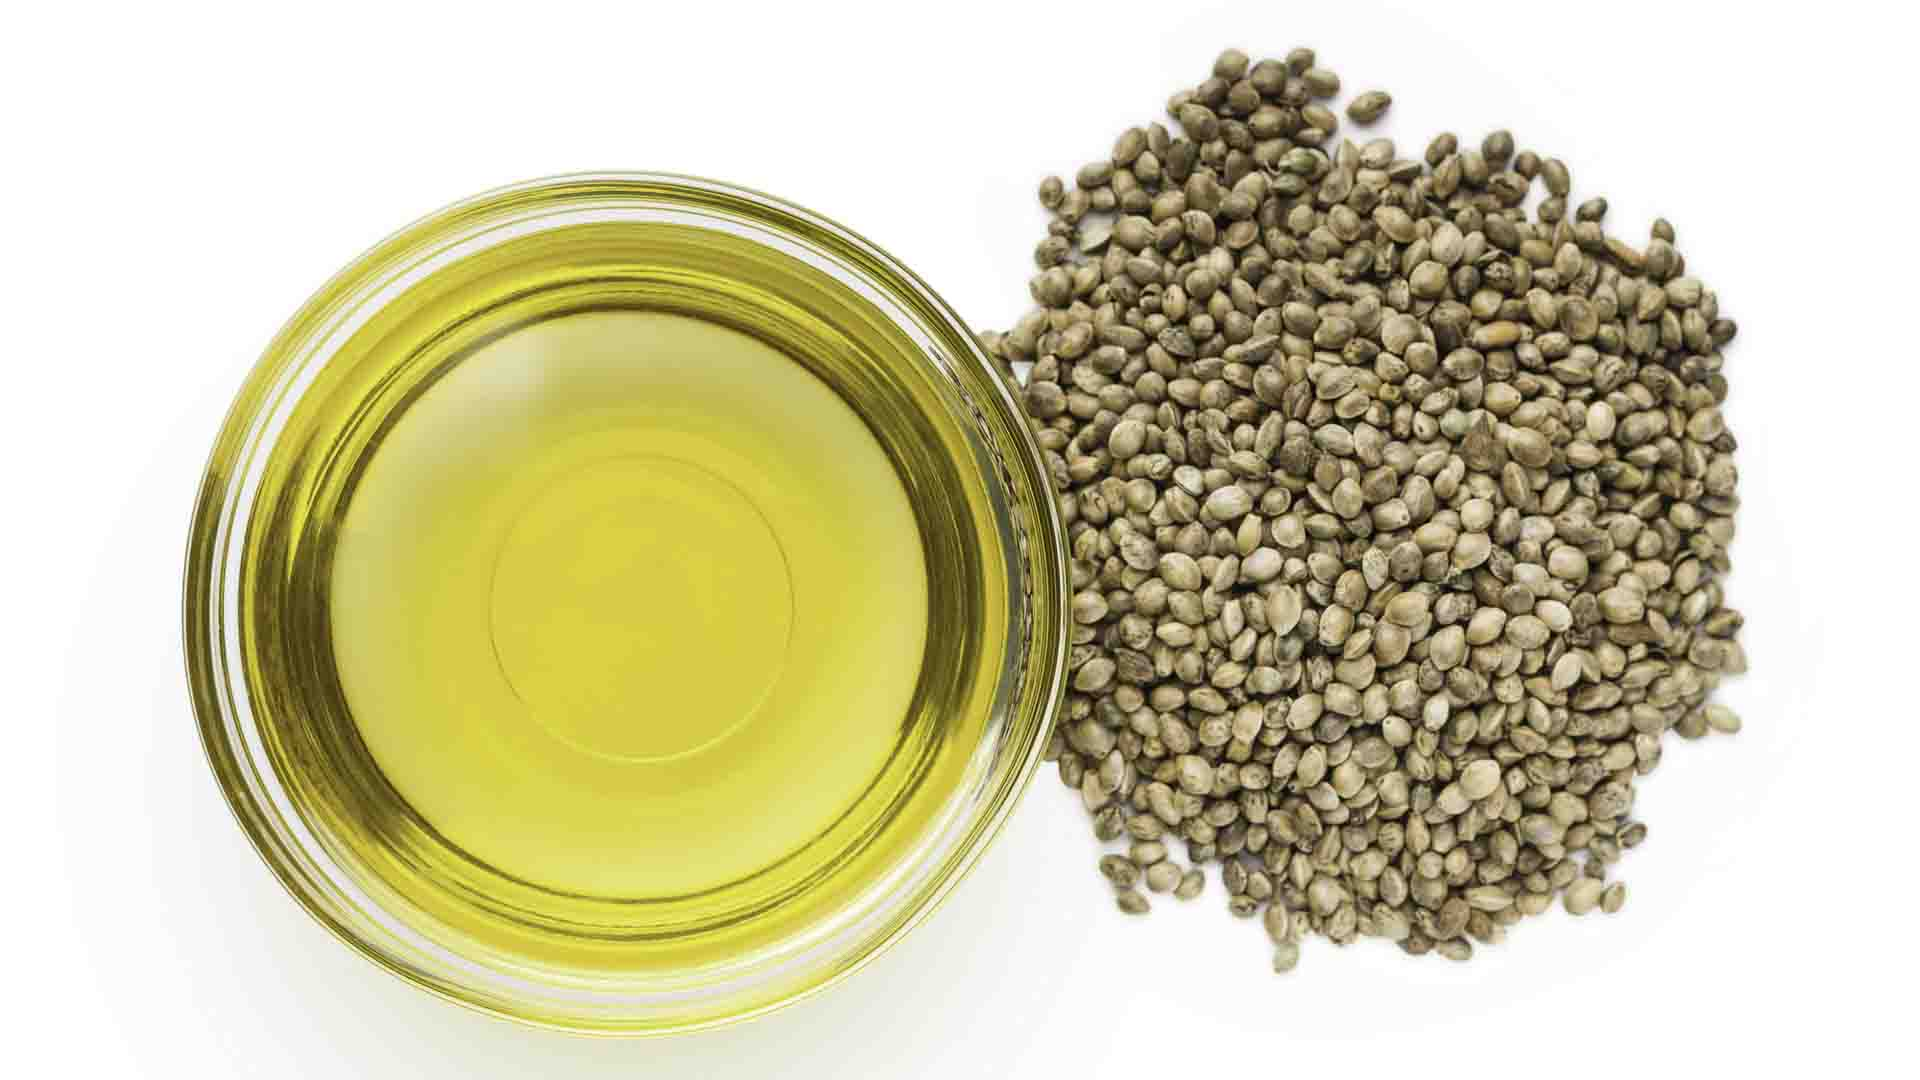 Hemp oil inside a glass bowl with hemp seed on the side in pure white background